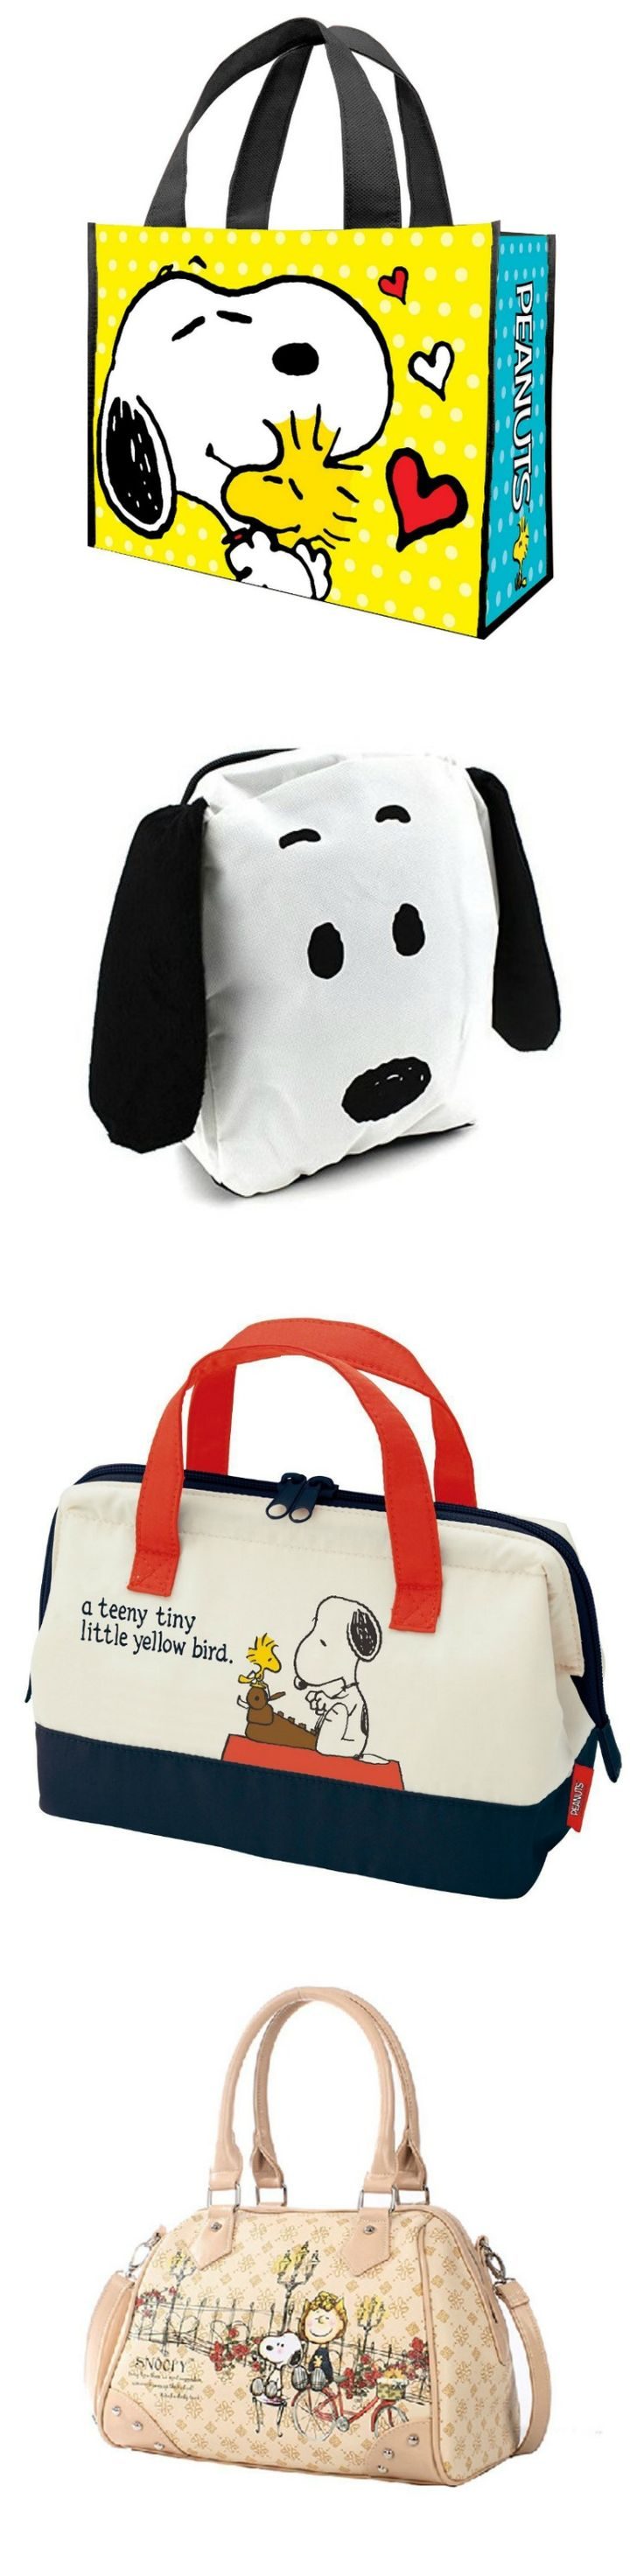 Totes for you! Start shopping via CollectPeanuts.com for Snoopy and Peanuts tote bags, purses, backpacks and more.